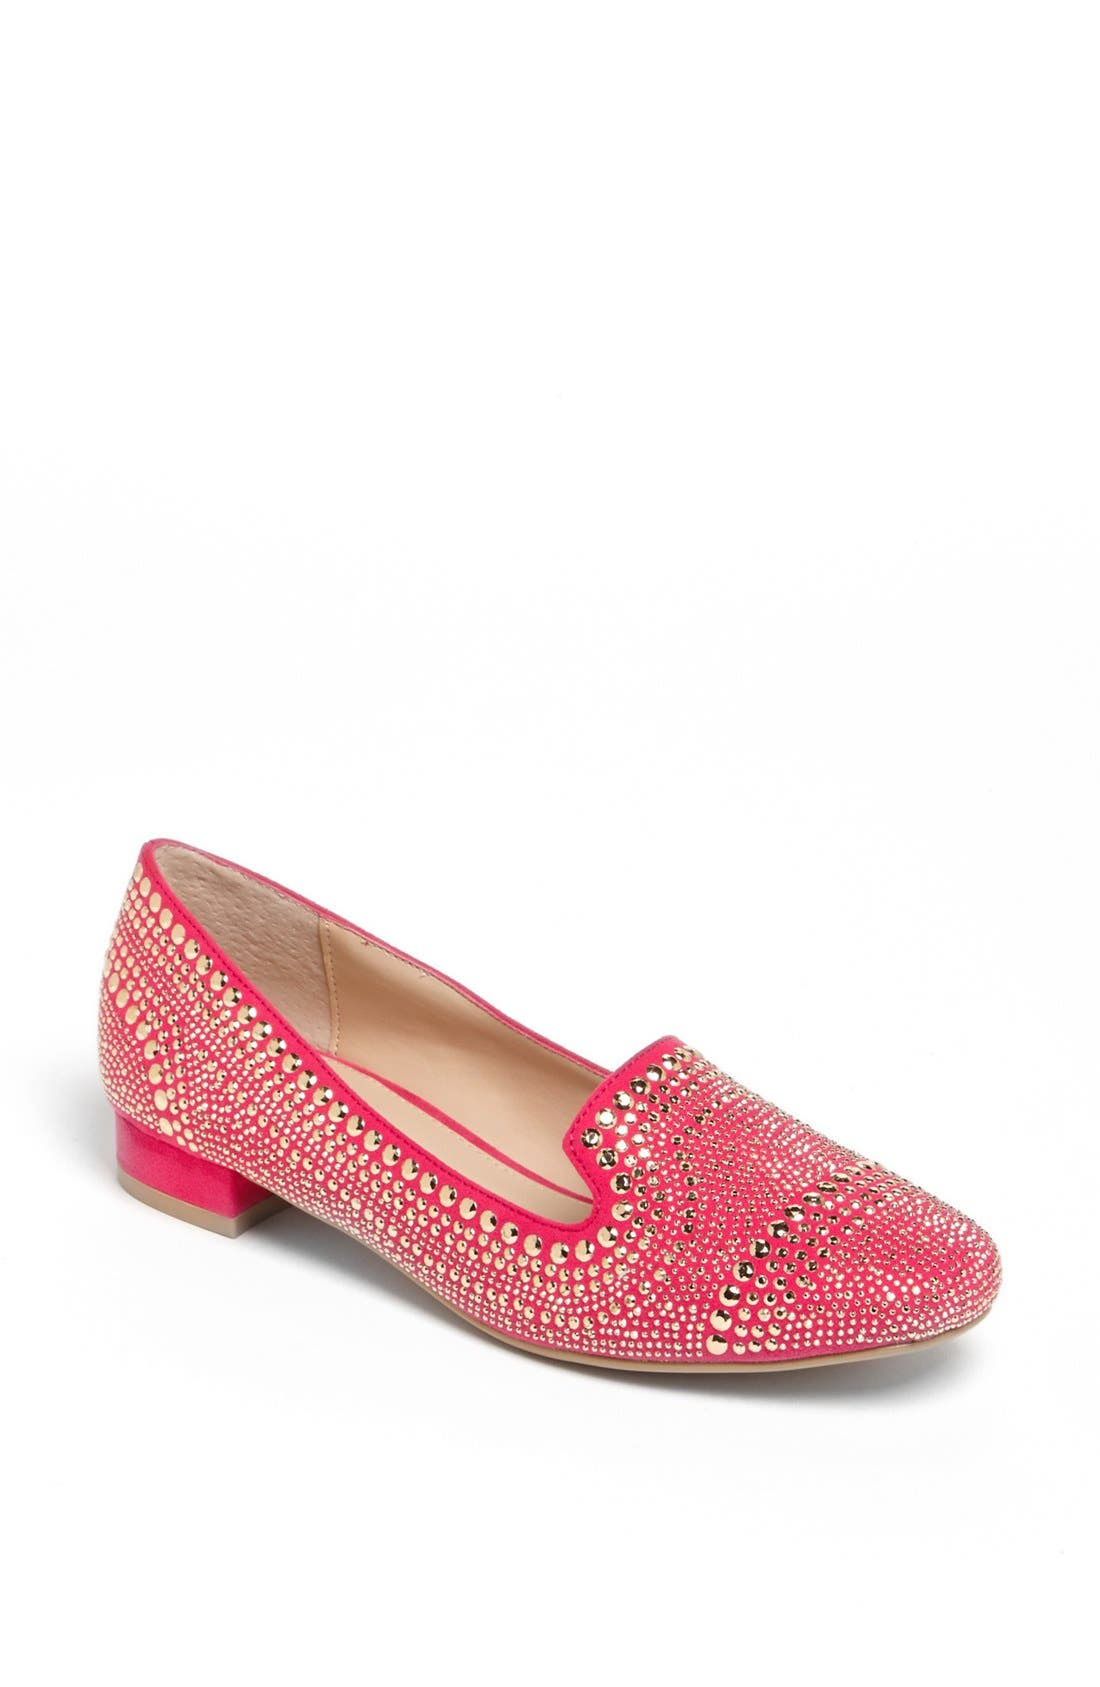 Alternate Image 1 Selected - Carvela Kurt Geiger 'Lark' Smoking Slipper